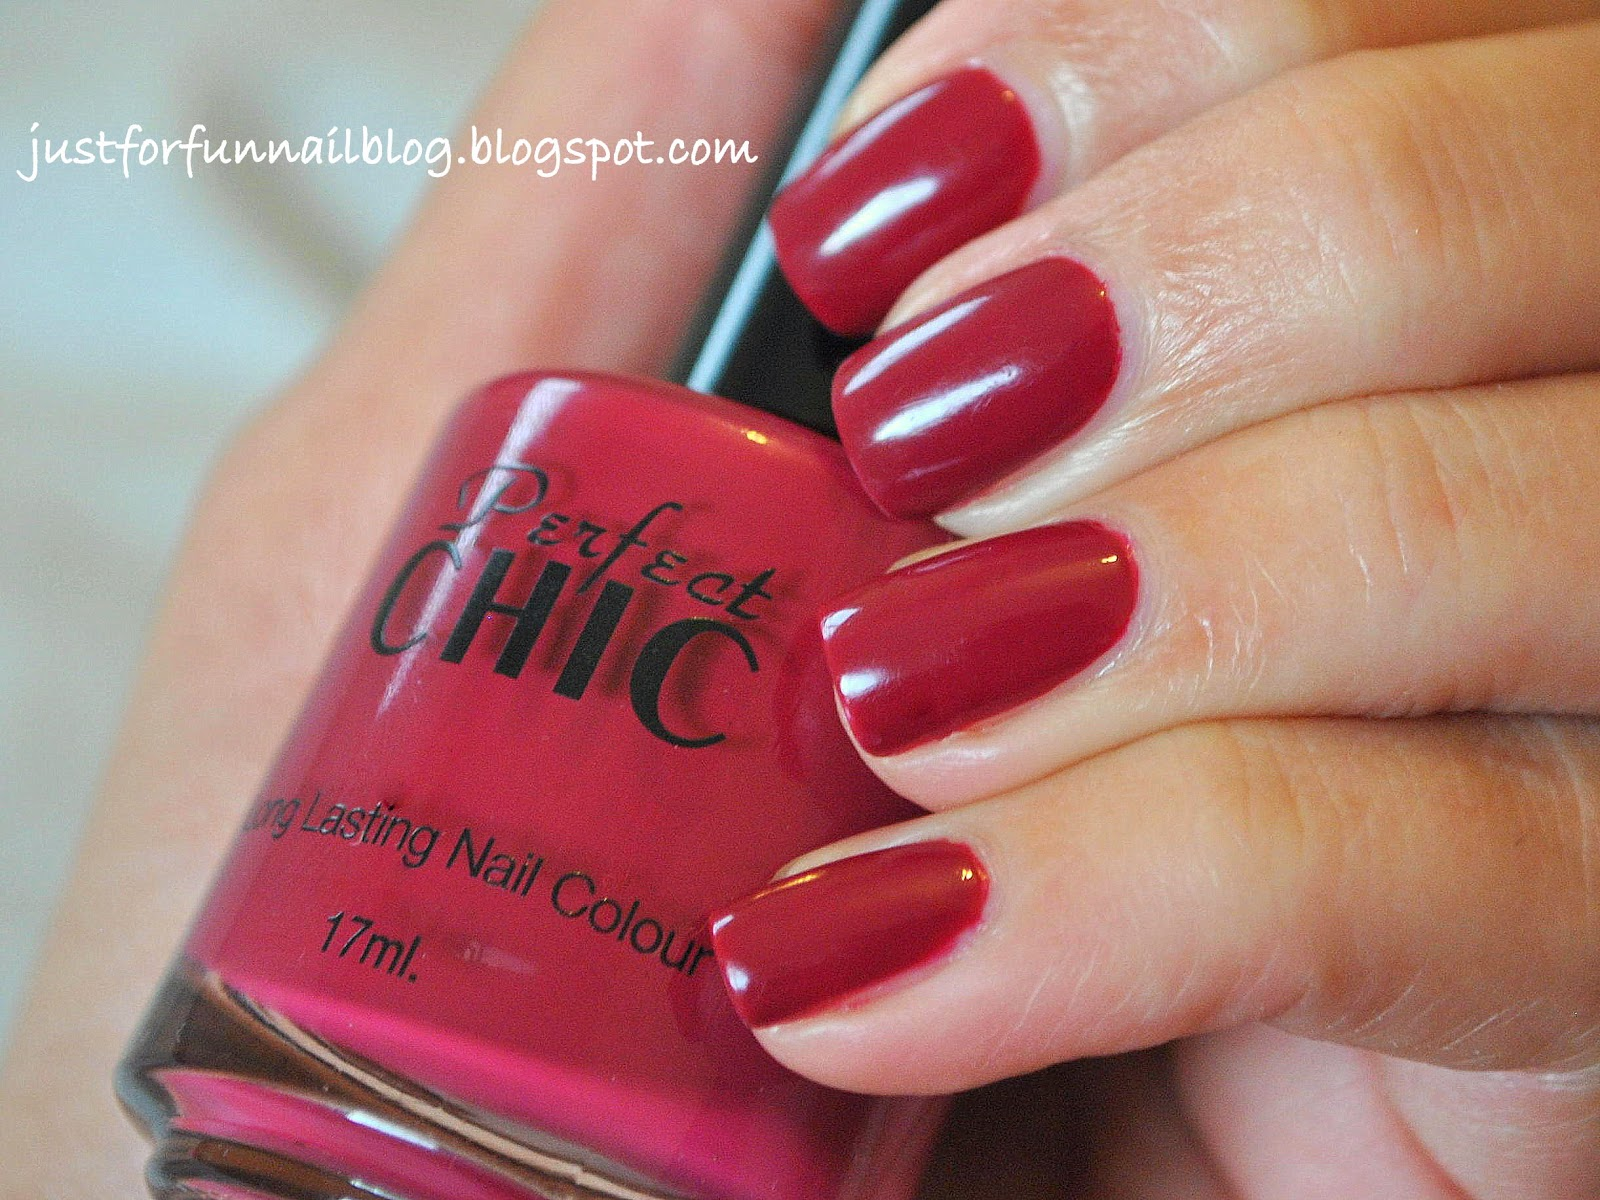 Perfect Chic 477 - Sweet Cheeks: Swatch & Review